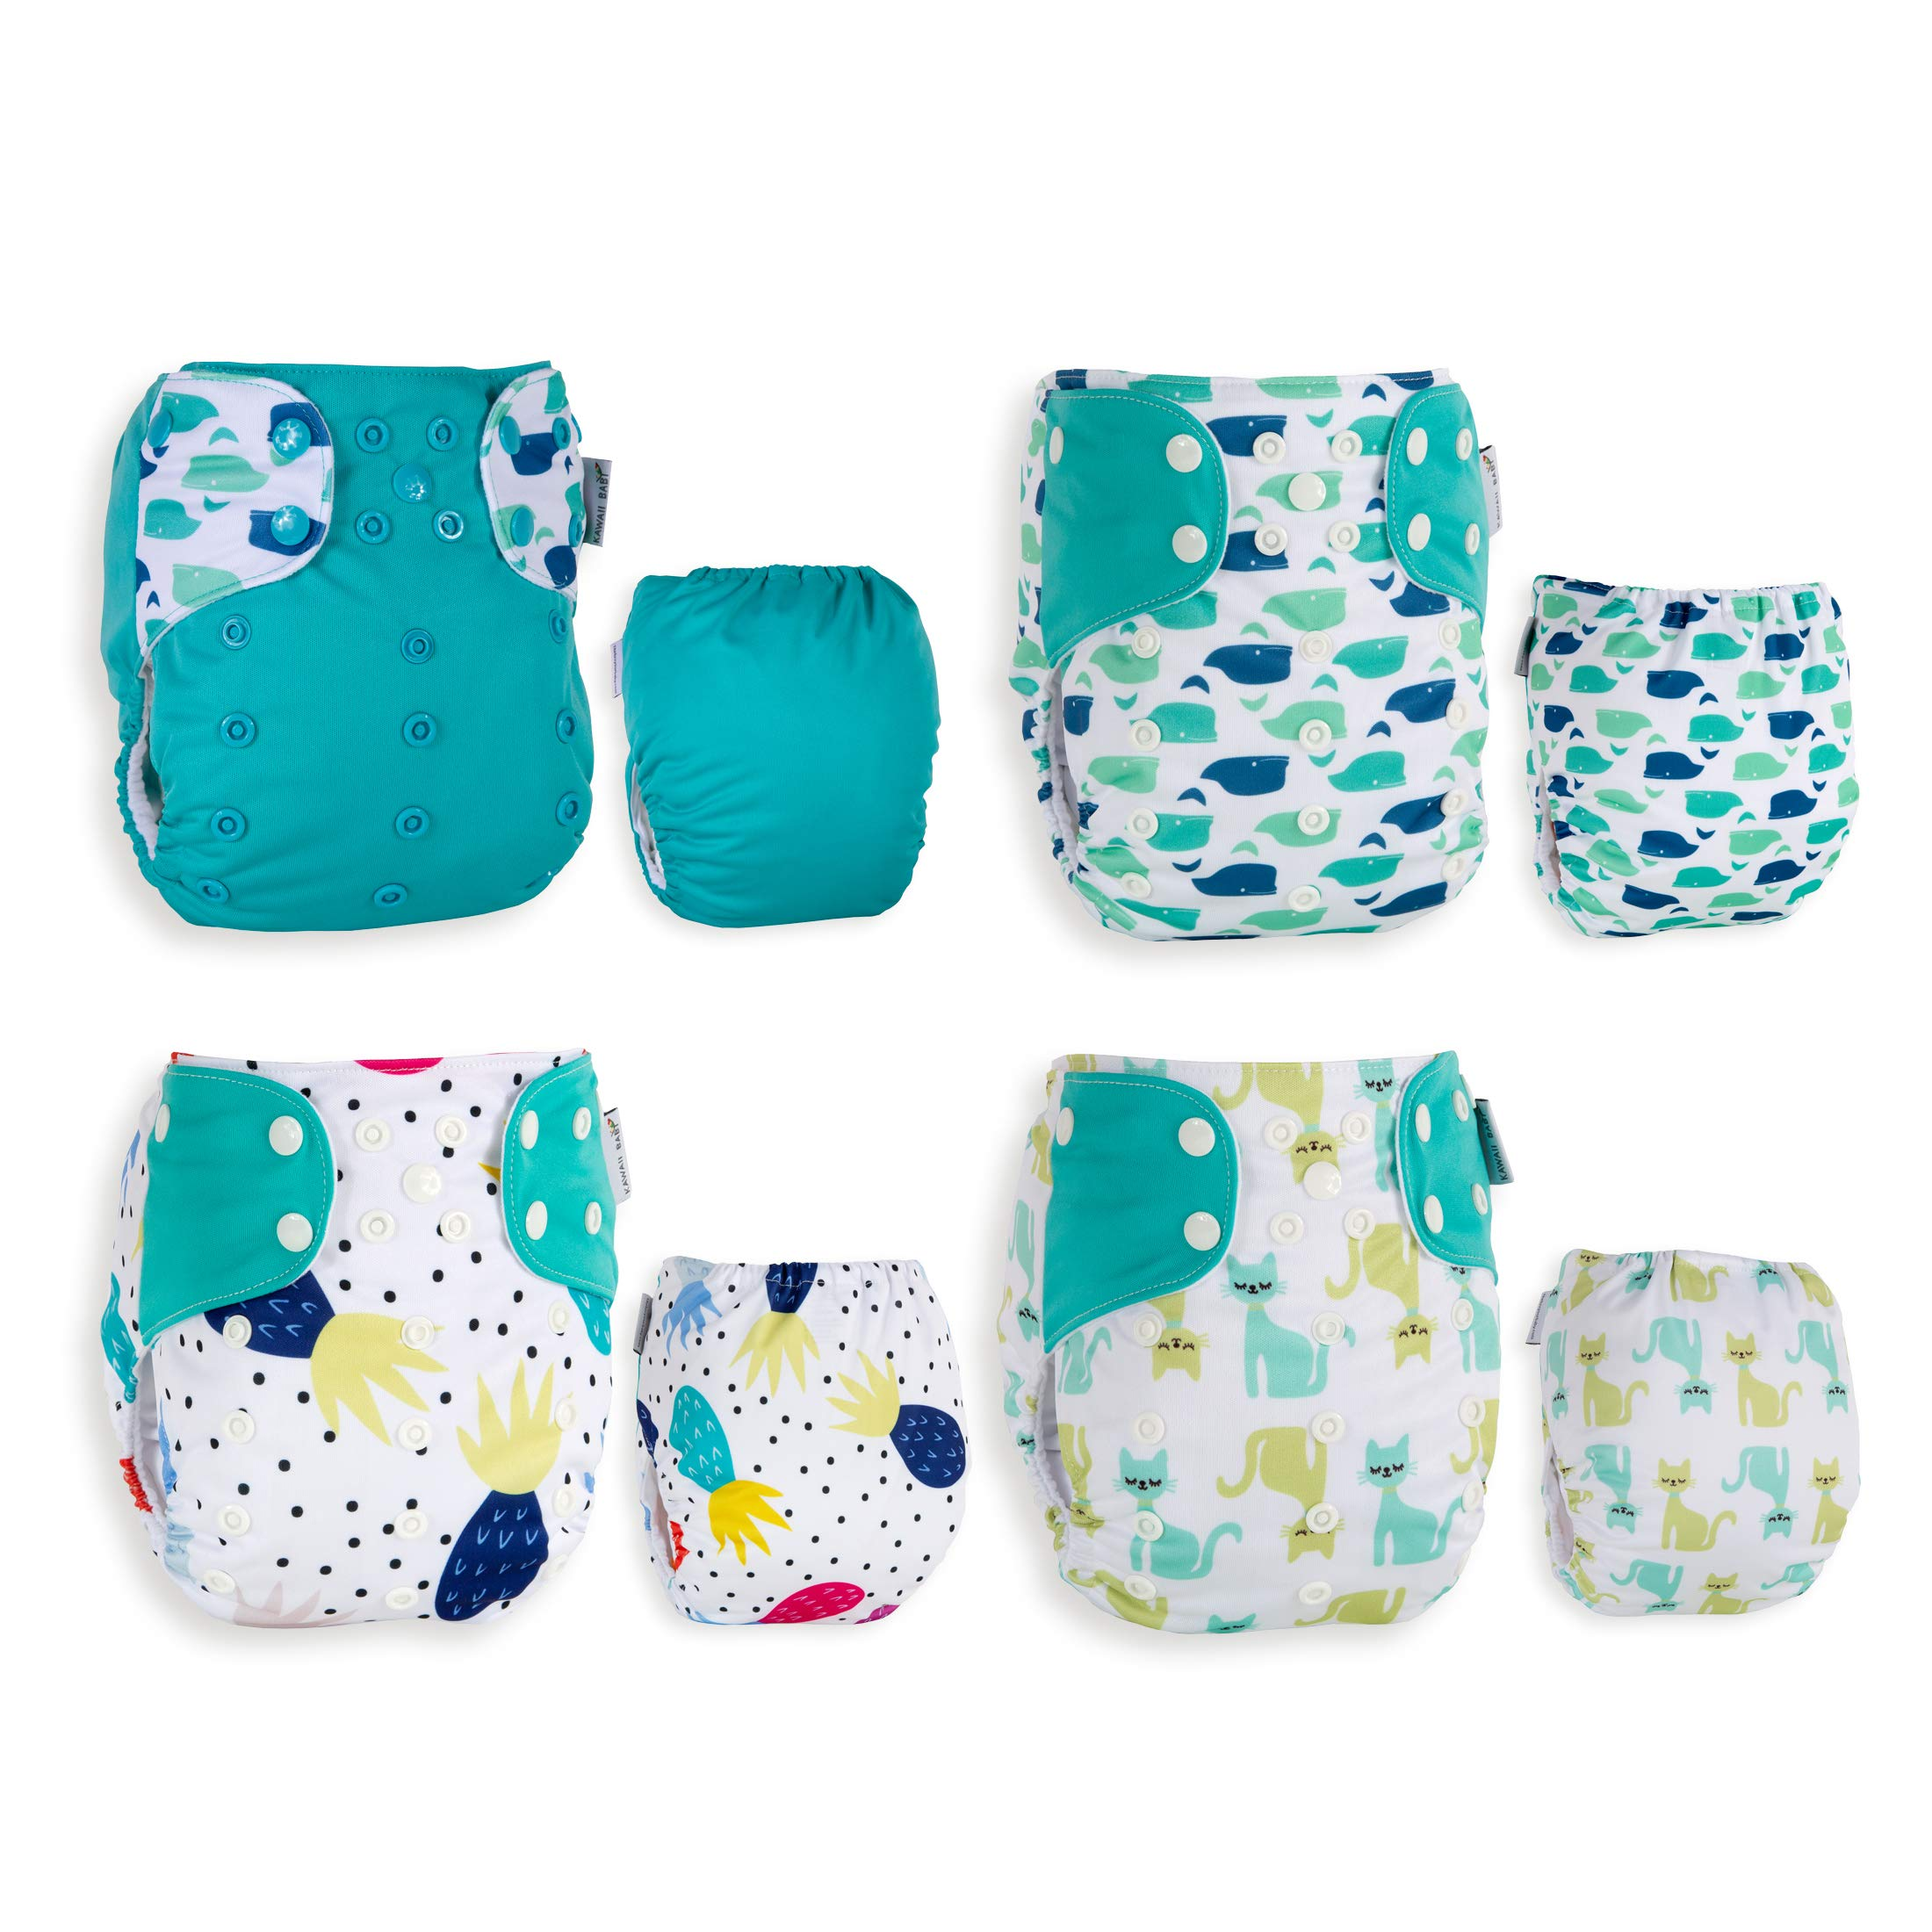 Best Seller! KaWaii Baby 20 One Size Printed Snap Cloth Diaper Shells/Spring Sunshine Theme/Reusable/Newborn to Toddler by Kawaii Baby (Image #4)